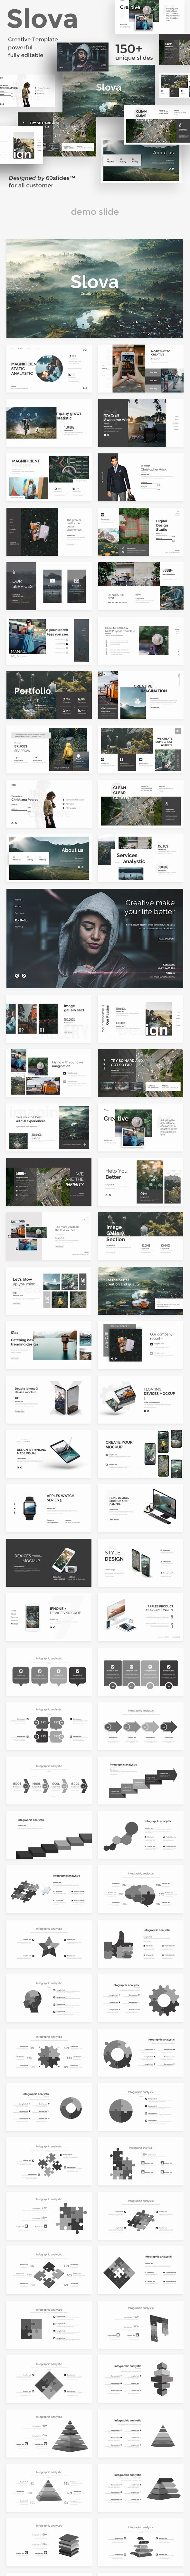 Slova Creative Project Powerpoint Template - Creative PowerPoint Templates